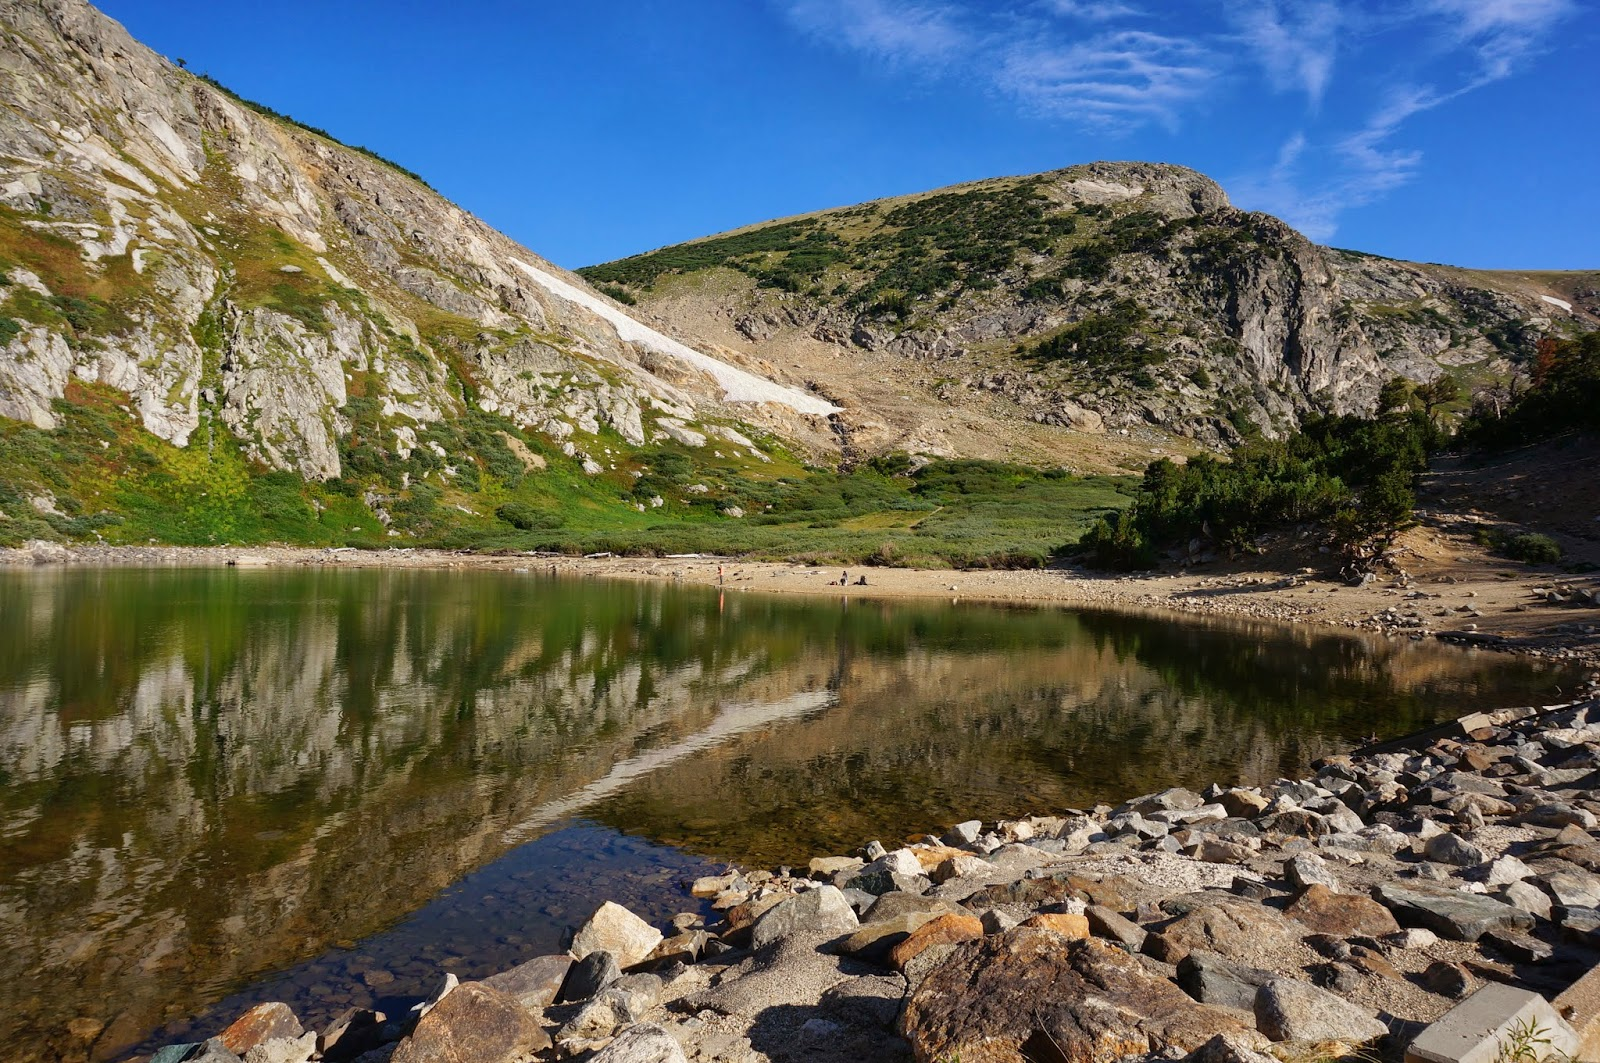 Go Hike Colorado: St. Mary's Glacier to Rock Tower